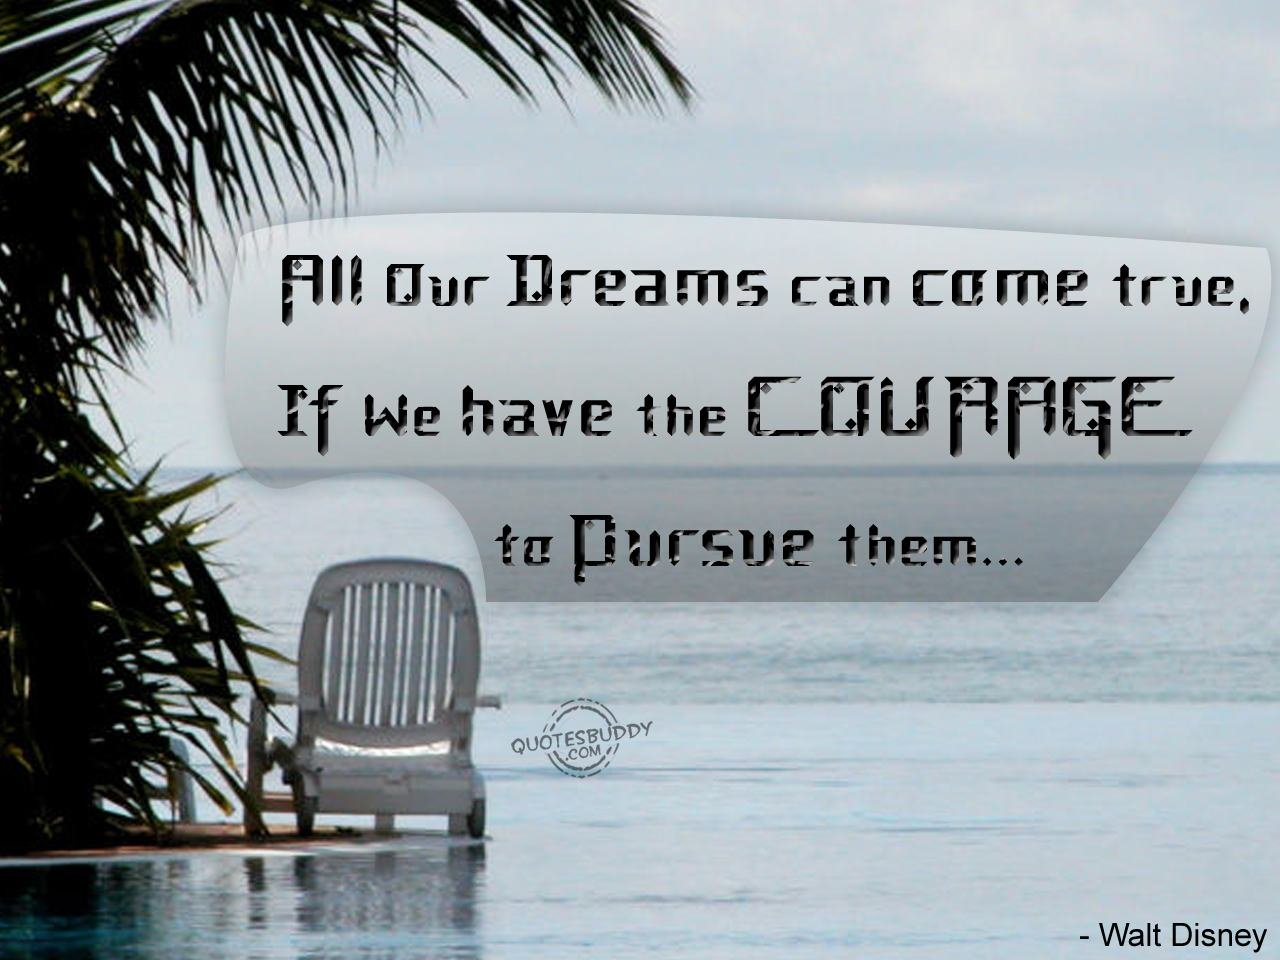 Motivational Quote on Dreams: All our dreams can come true if we have the courage